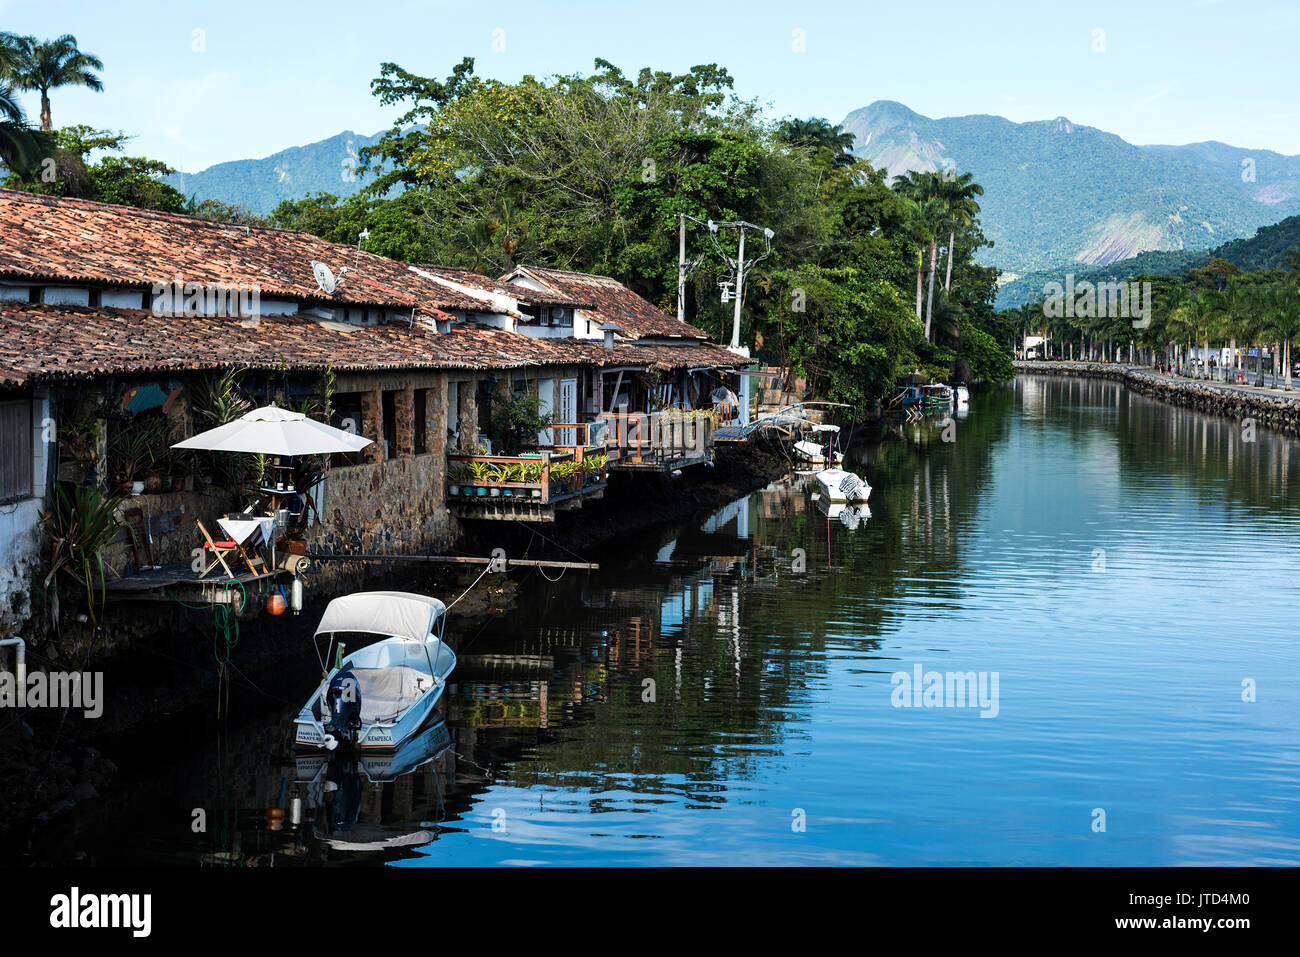 Paraty, Brazil - February 24, 2017: An iconic view of the canal and the colonial houses of the historic town Paraty, Rio de Janeiro state, Brazil - Stock Image